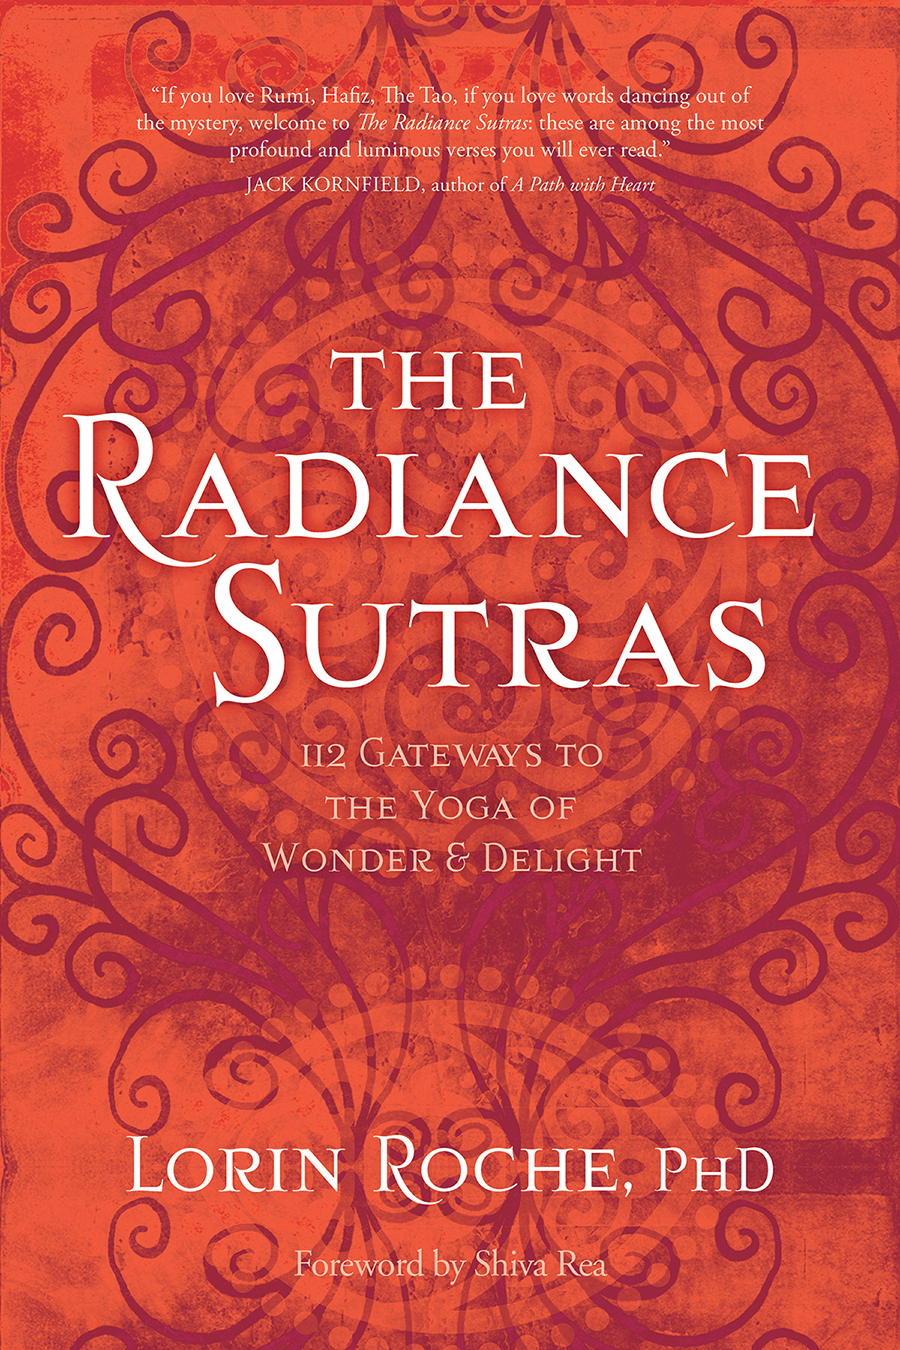 Click here to buy the Radiance Sutras now!